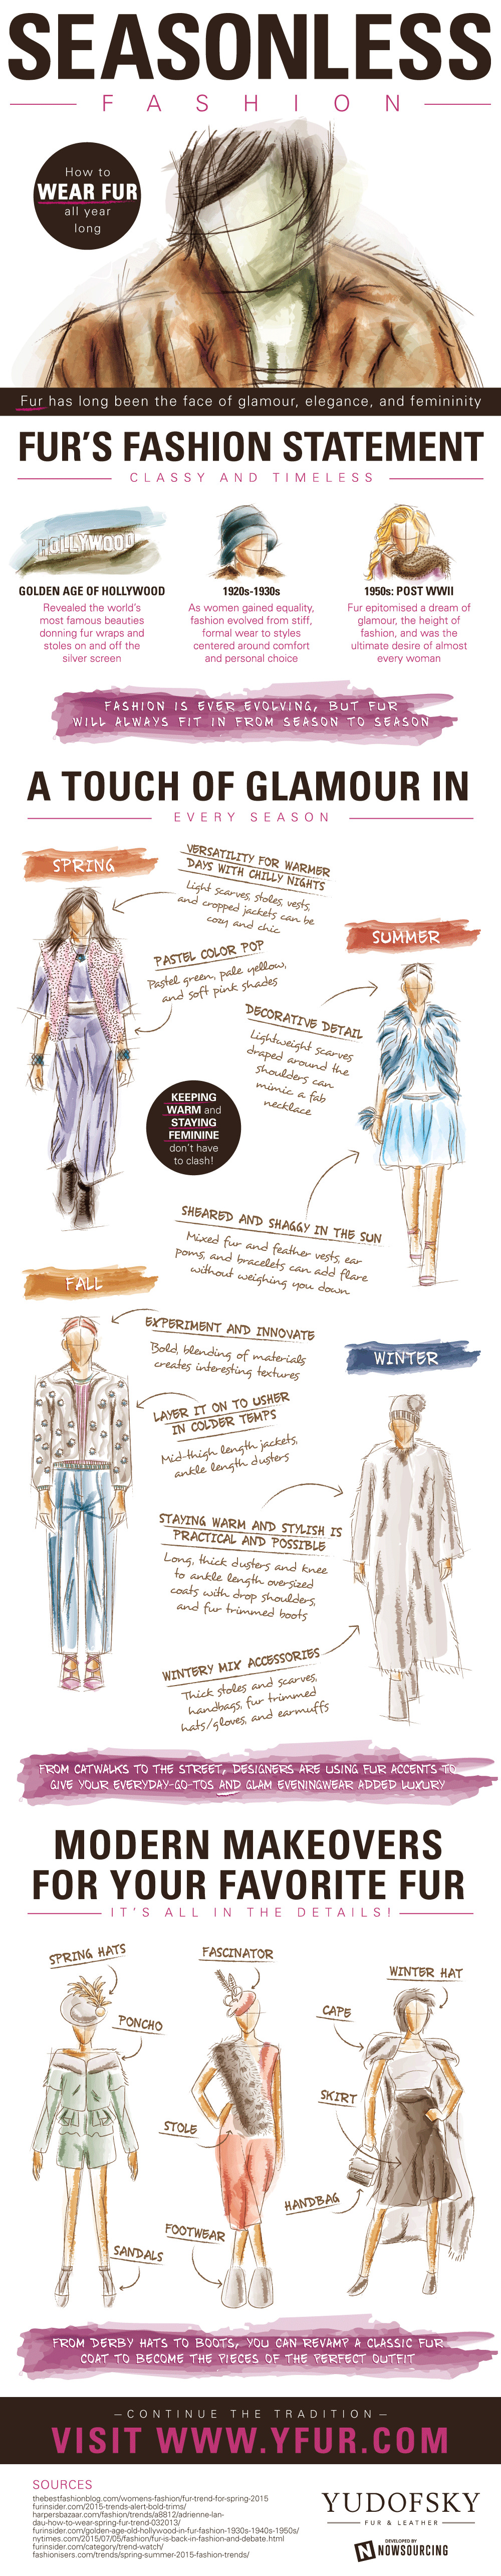 seasonless-fashion-infographic